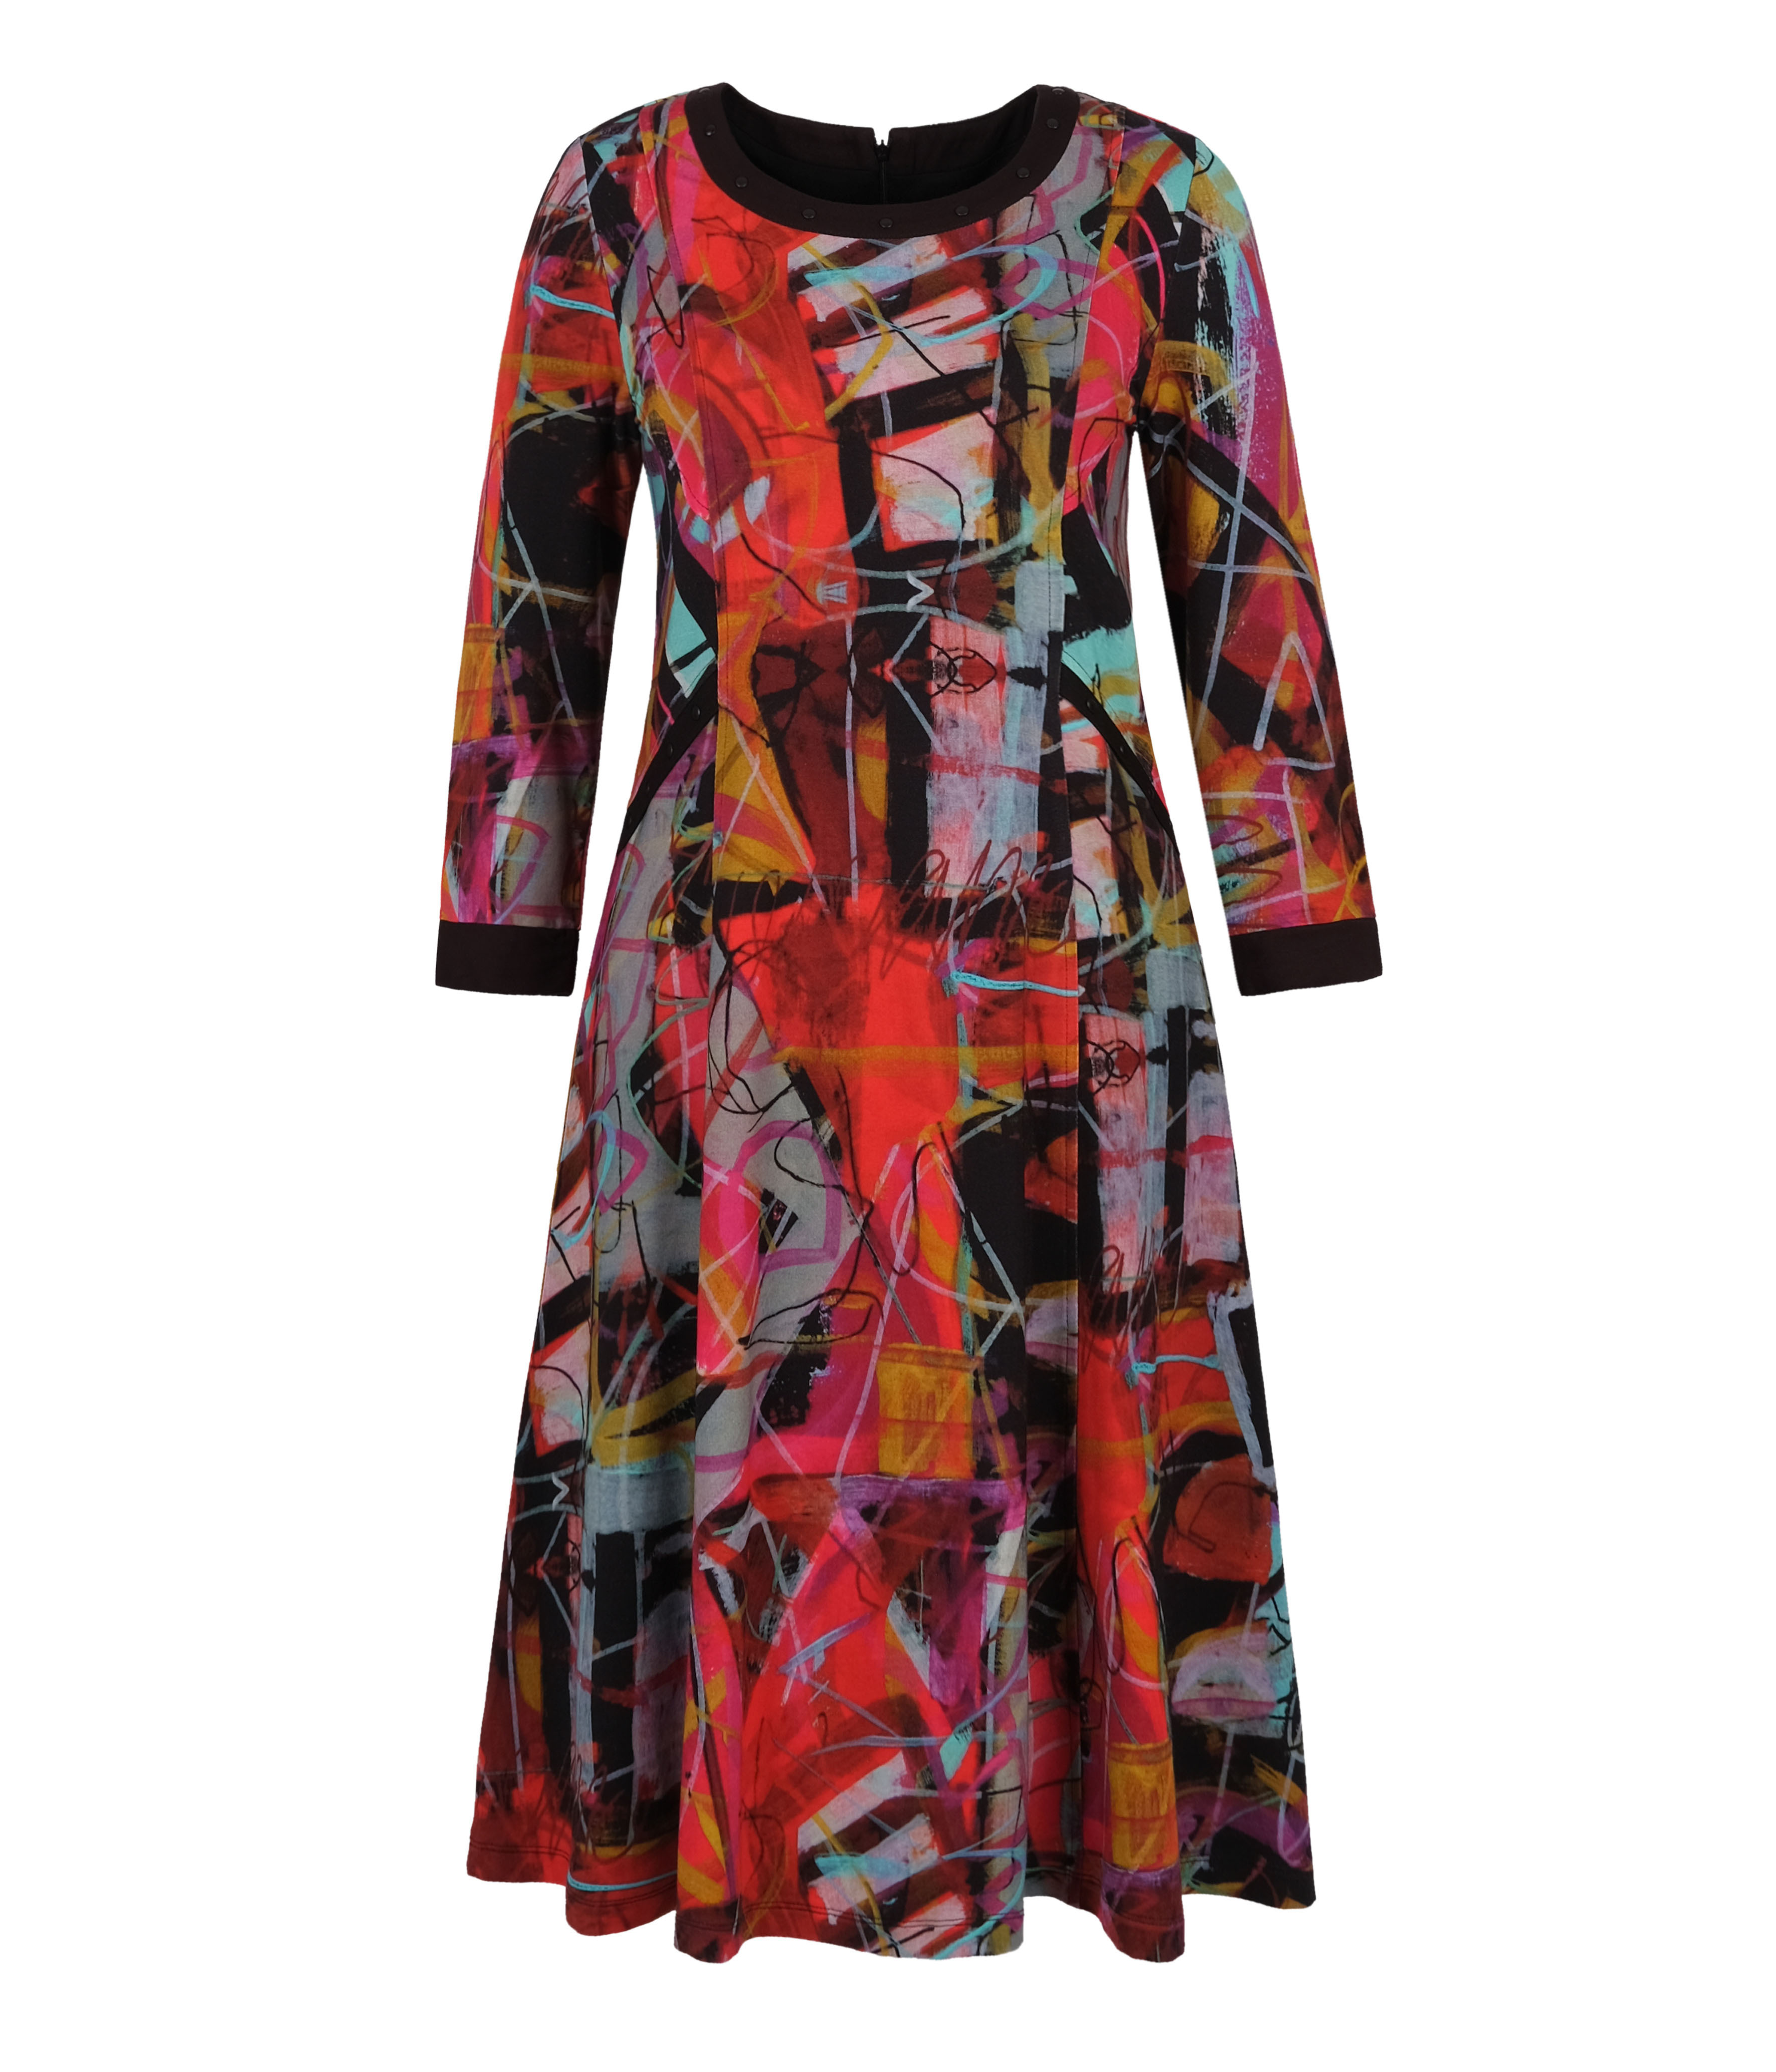 Simply Art Dolcezza: Red 3 Graffiti Abstract Art Flared Dress (1 Left!)